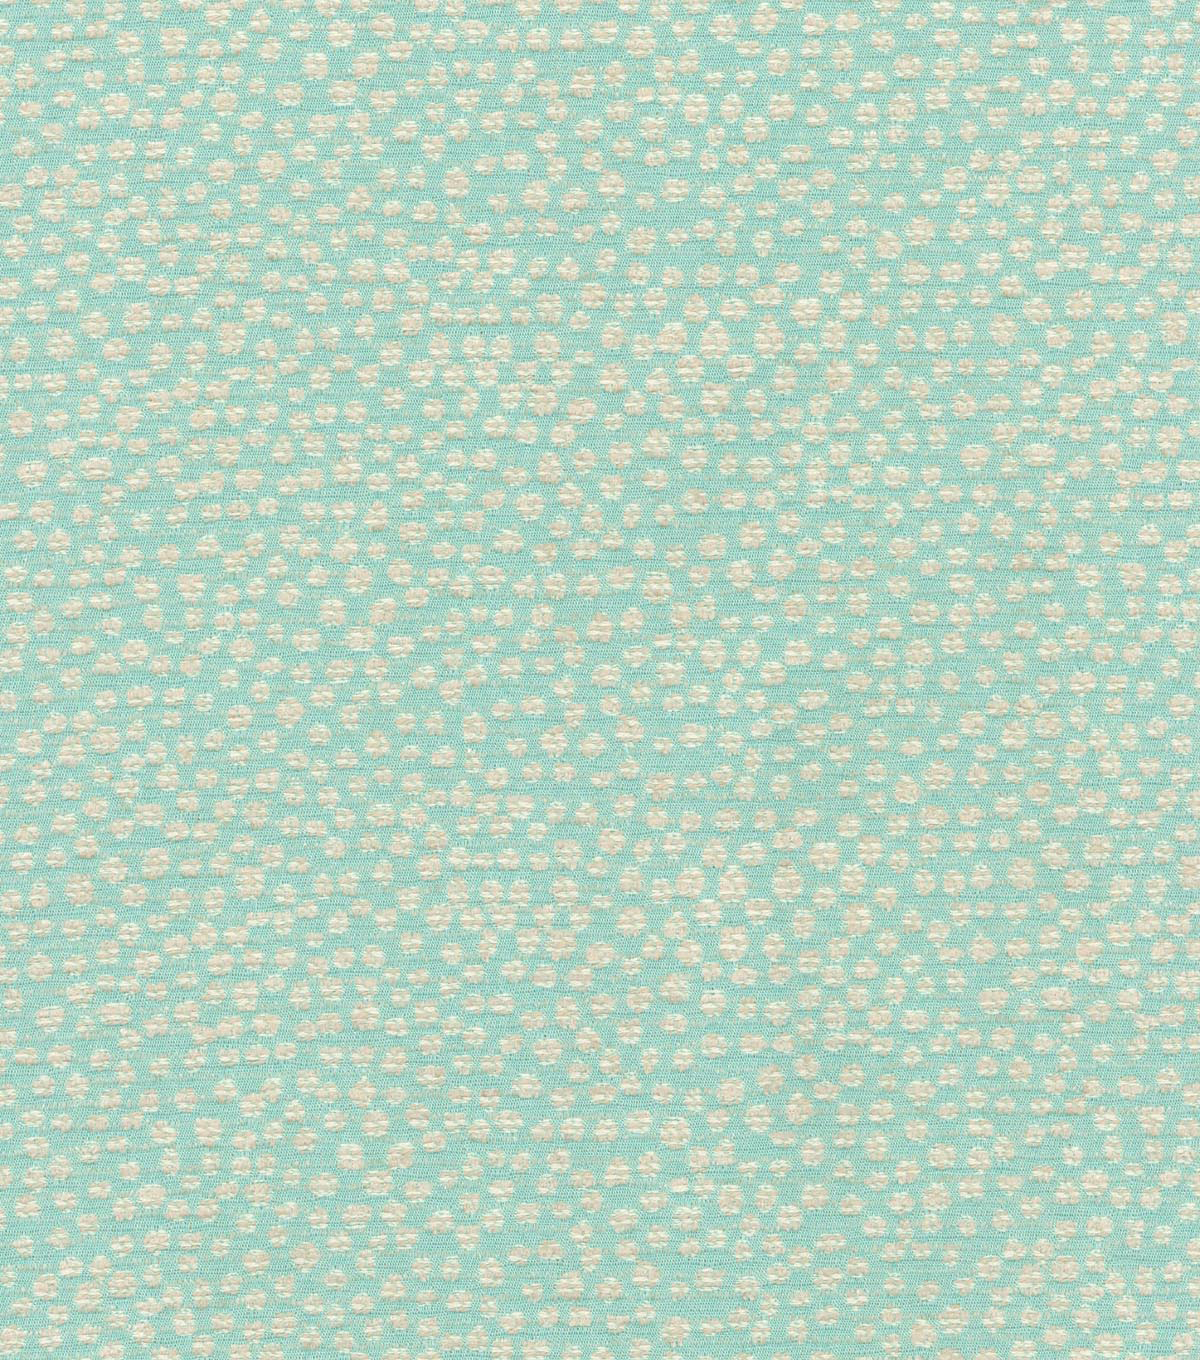 Waverly Upholstery Fabric-Pebble/Pool